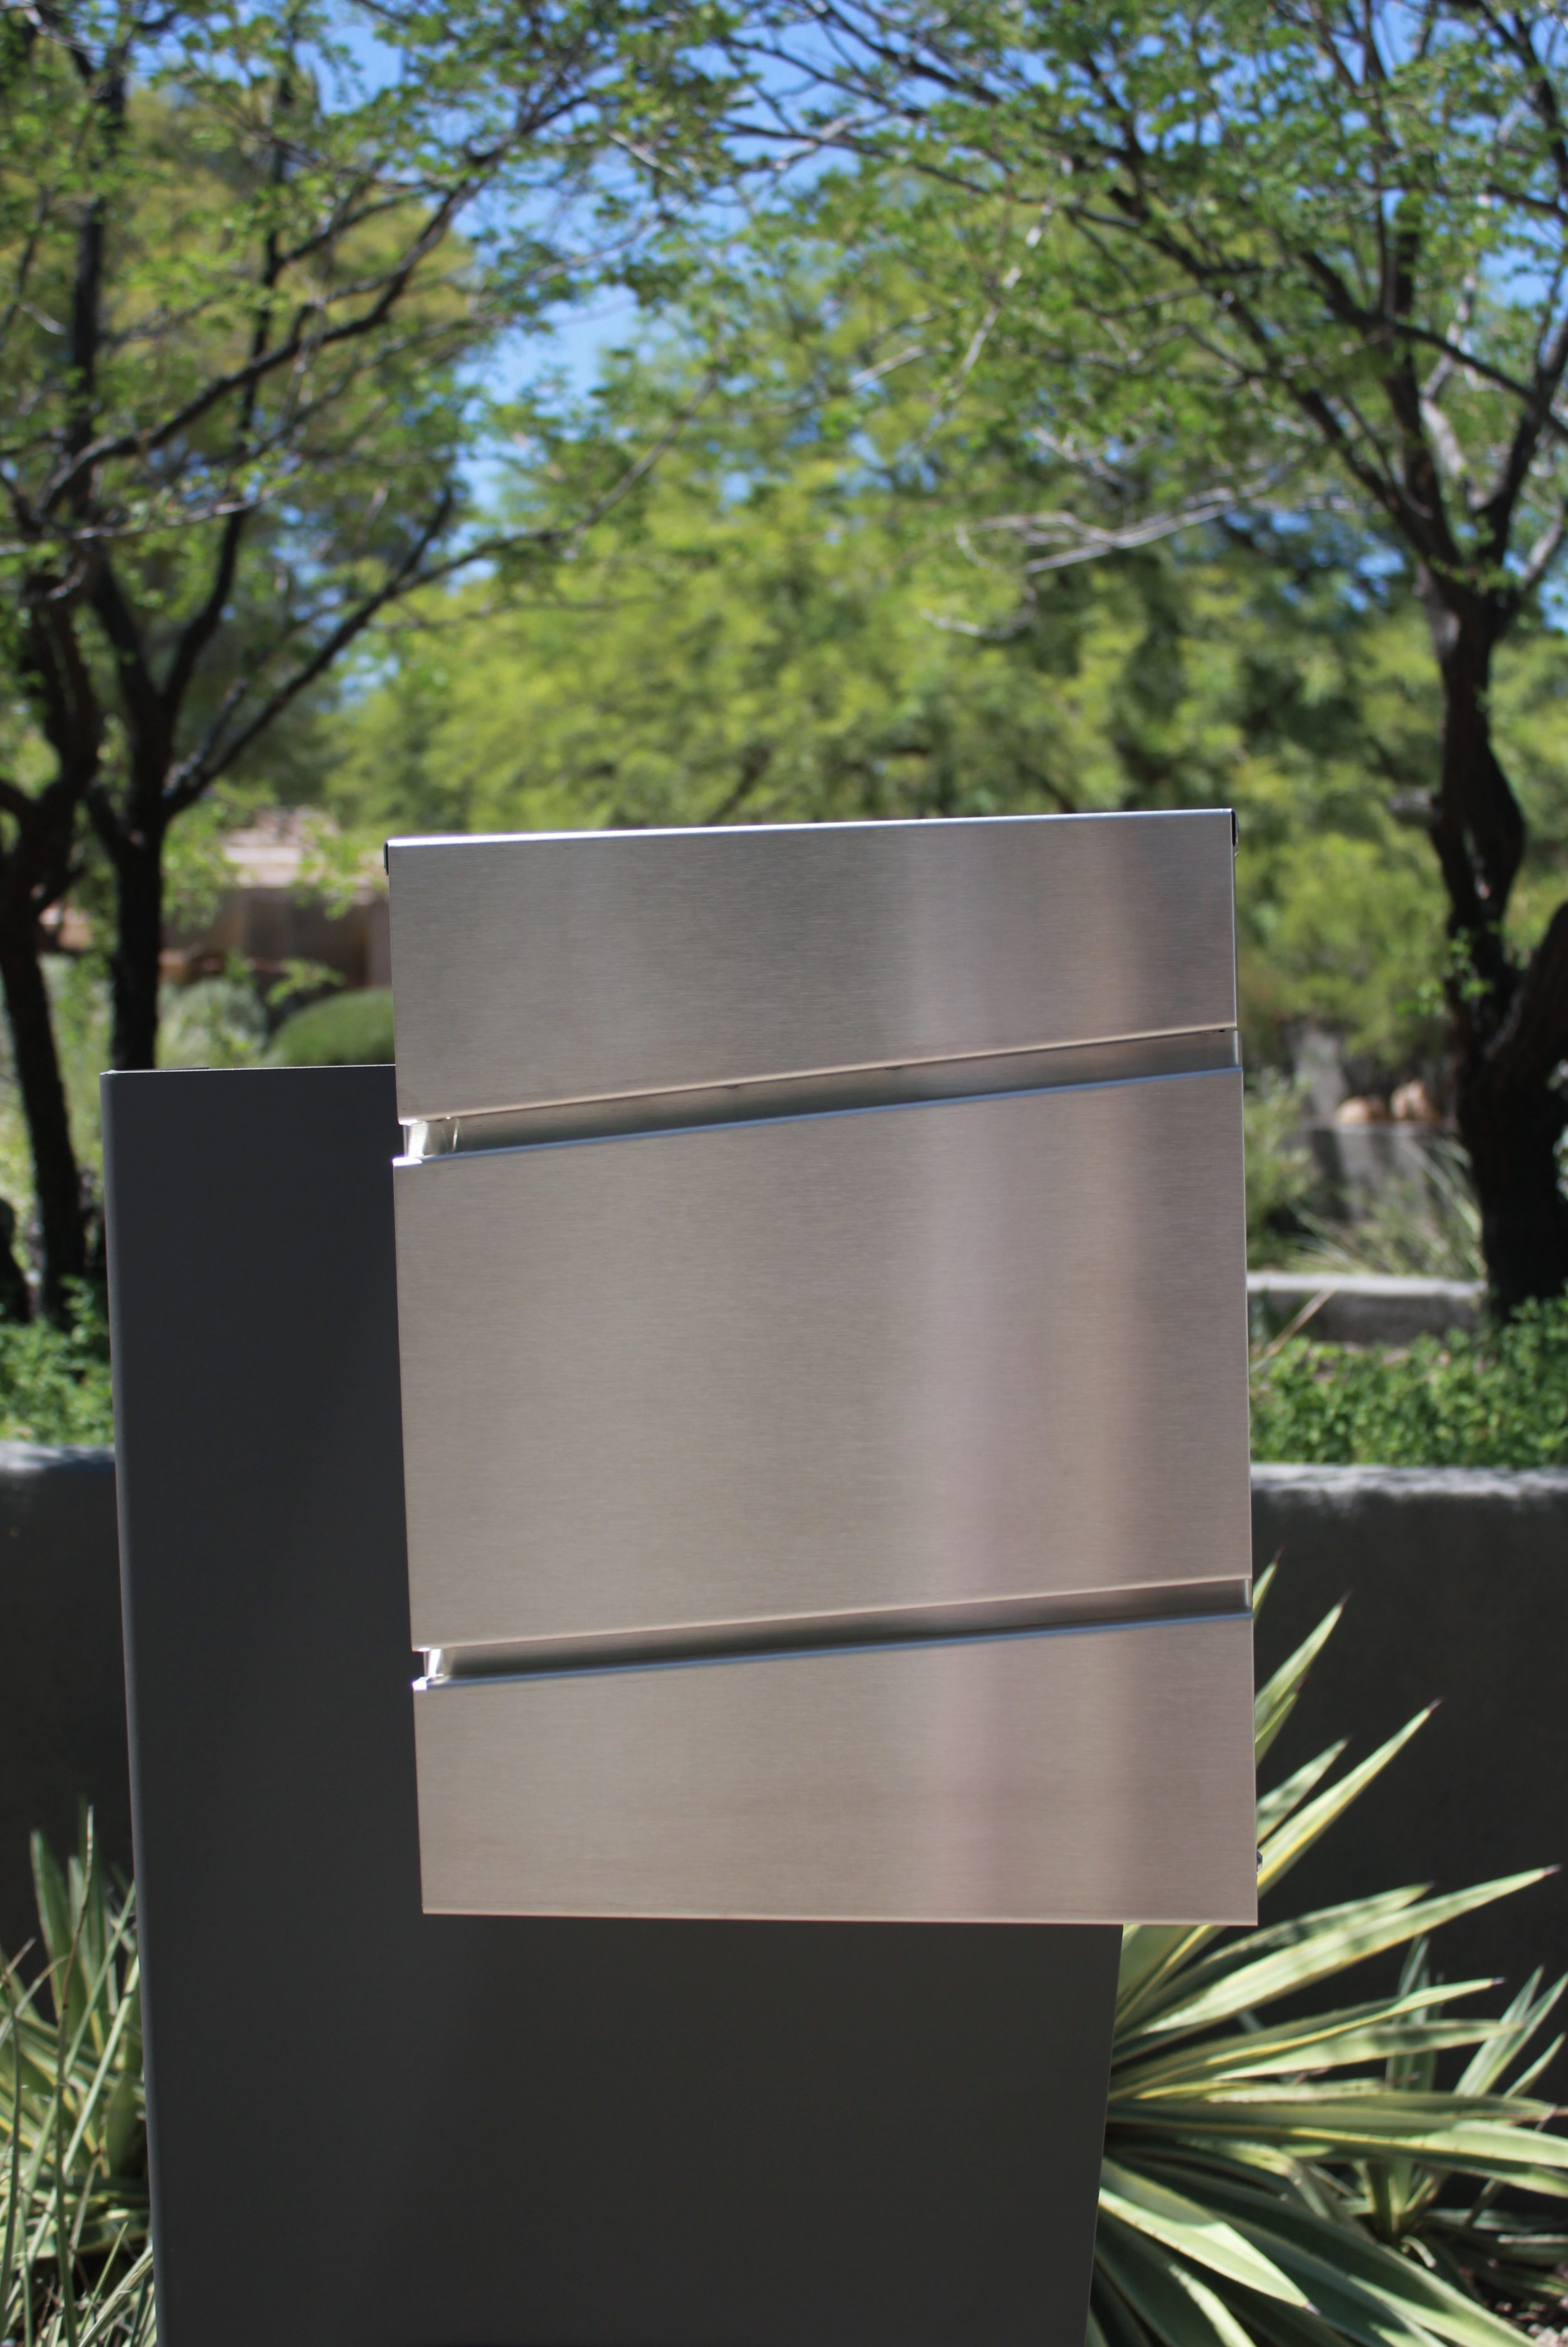 The Metro- Modern Rectangular Stainless Steel Mailbox Front View